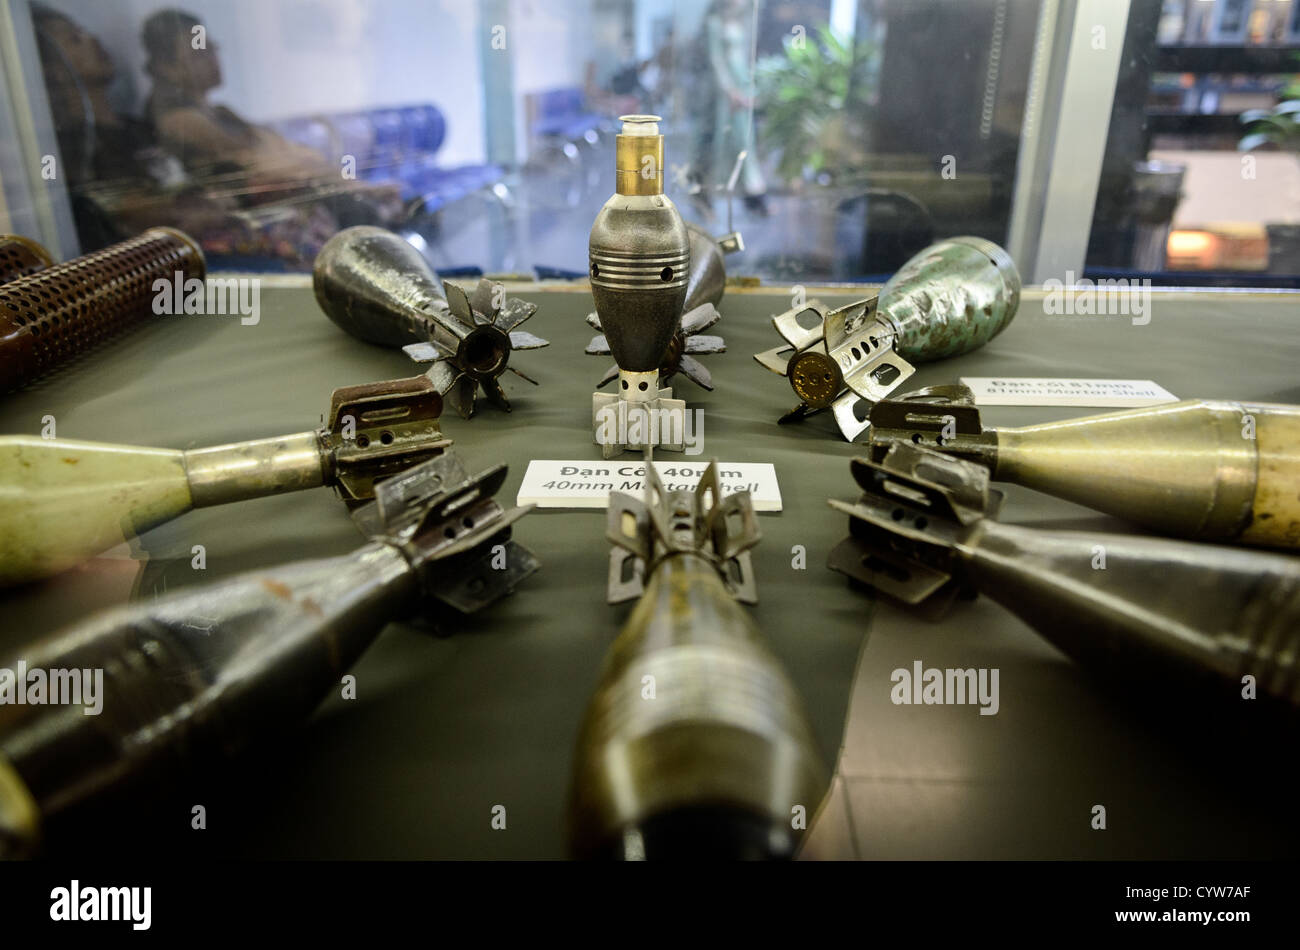 HO CHI MINH CITY, Vietnam - A collection of shells and weapons from the Vietnam War on display at the War Remnants - Stock Image